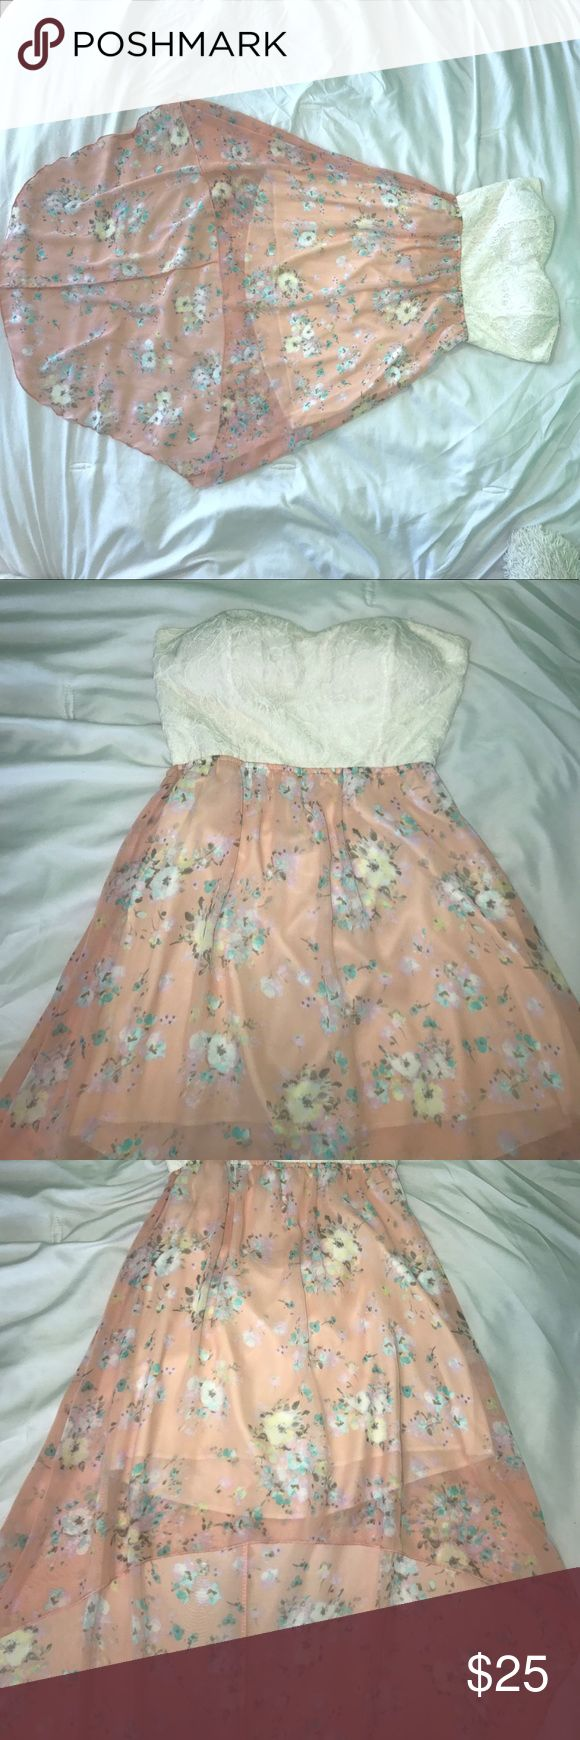 Strapless dress with lace top and floral skirt  Barely worn and in perfect condition  love this dress because it can be dressed up with a necklace and heels for a formal event, and dressed down with sandals and a denim jacket for casual wear  hope you guys like it! Lord & Taylor Dresses